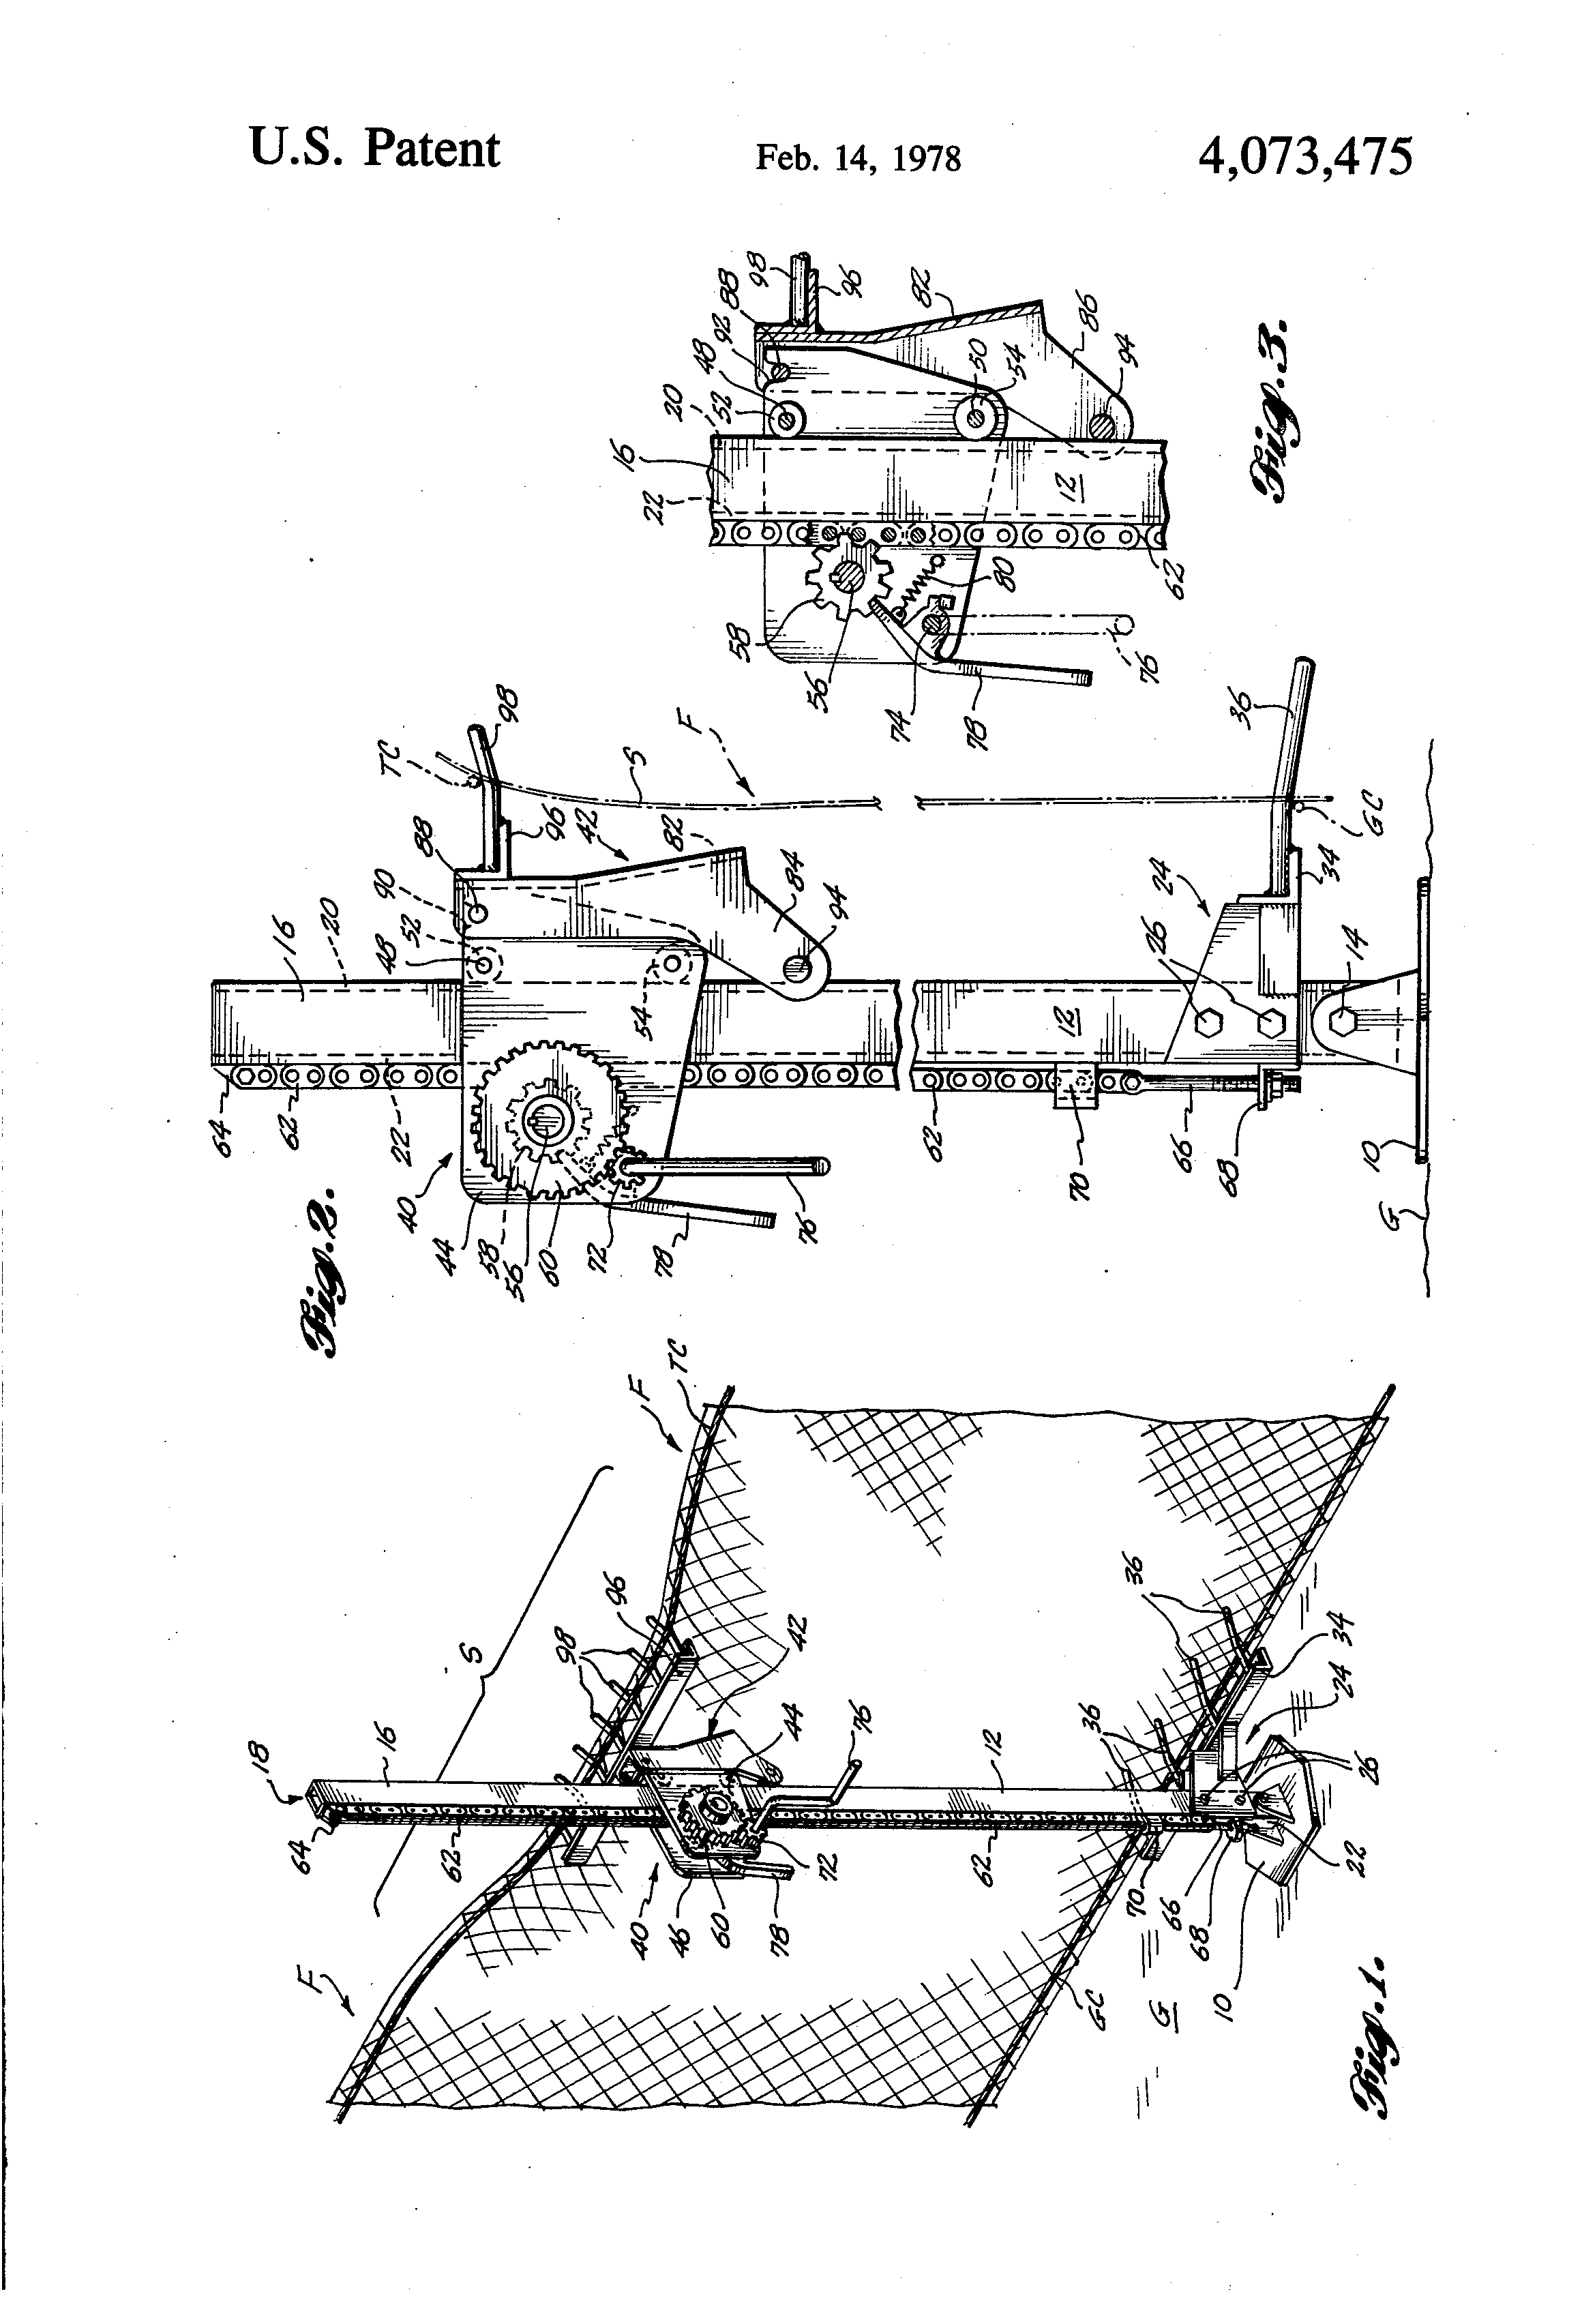 Privacy screen for chain link fence sears - Patent Drawing